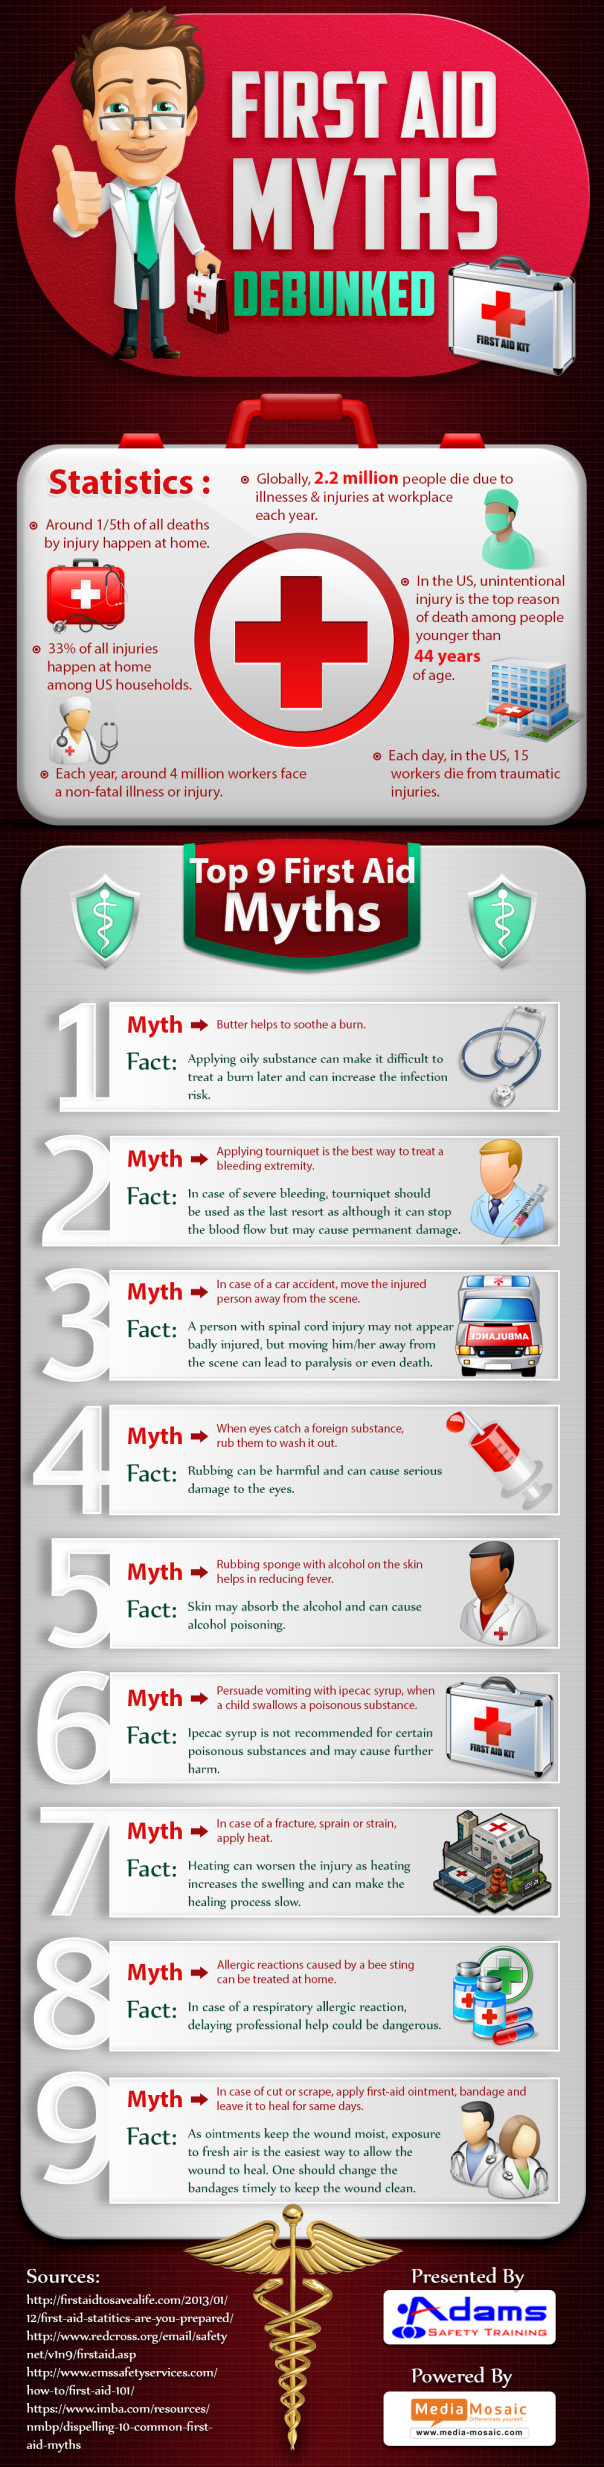 First aid myths debunked